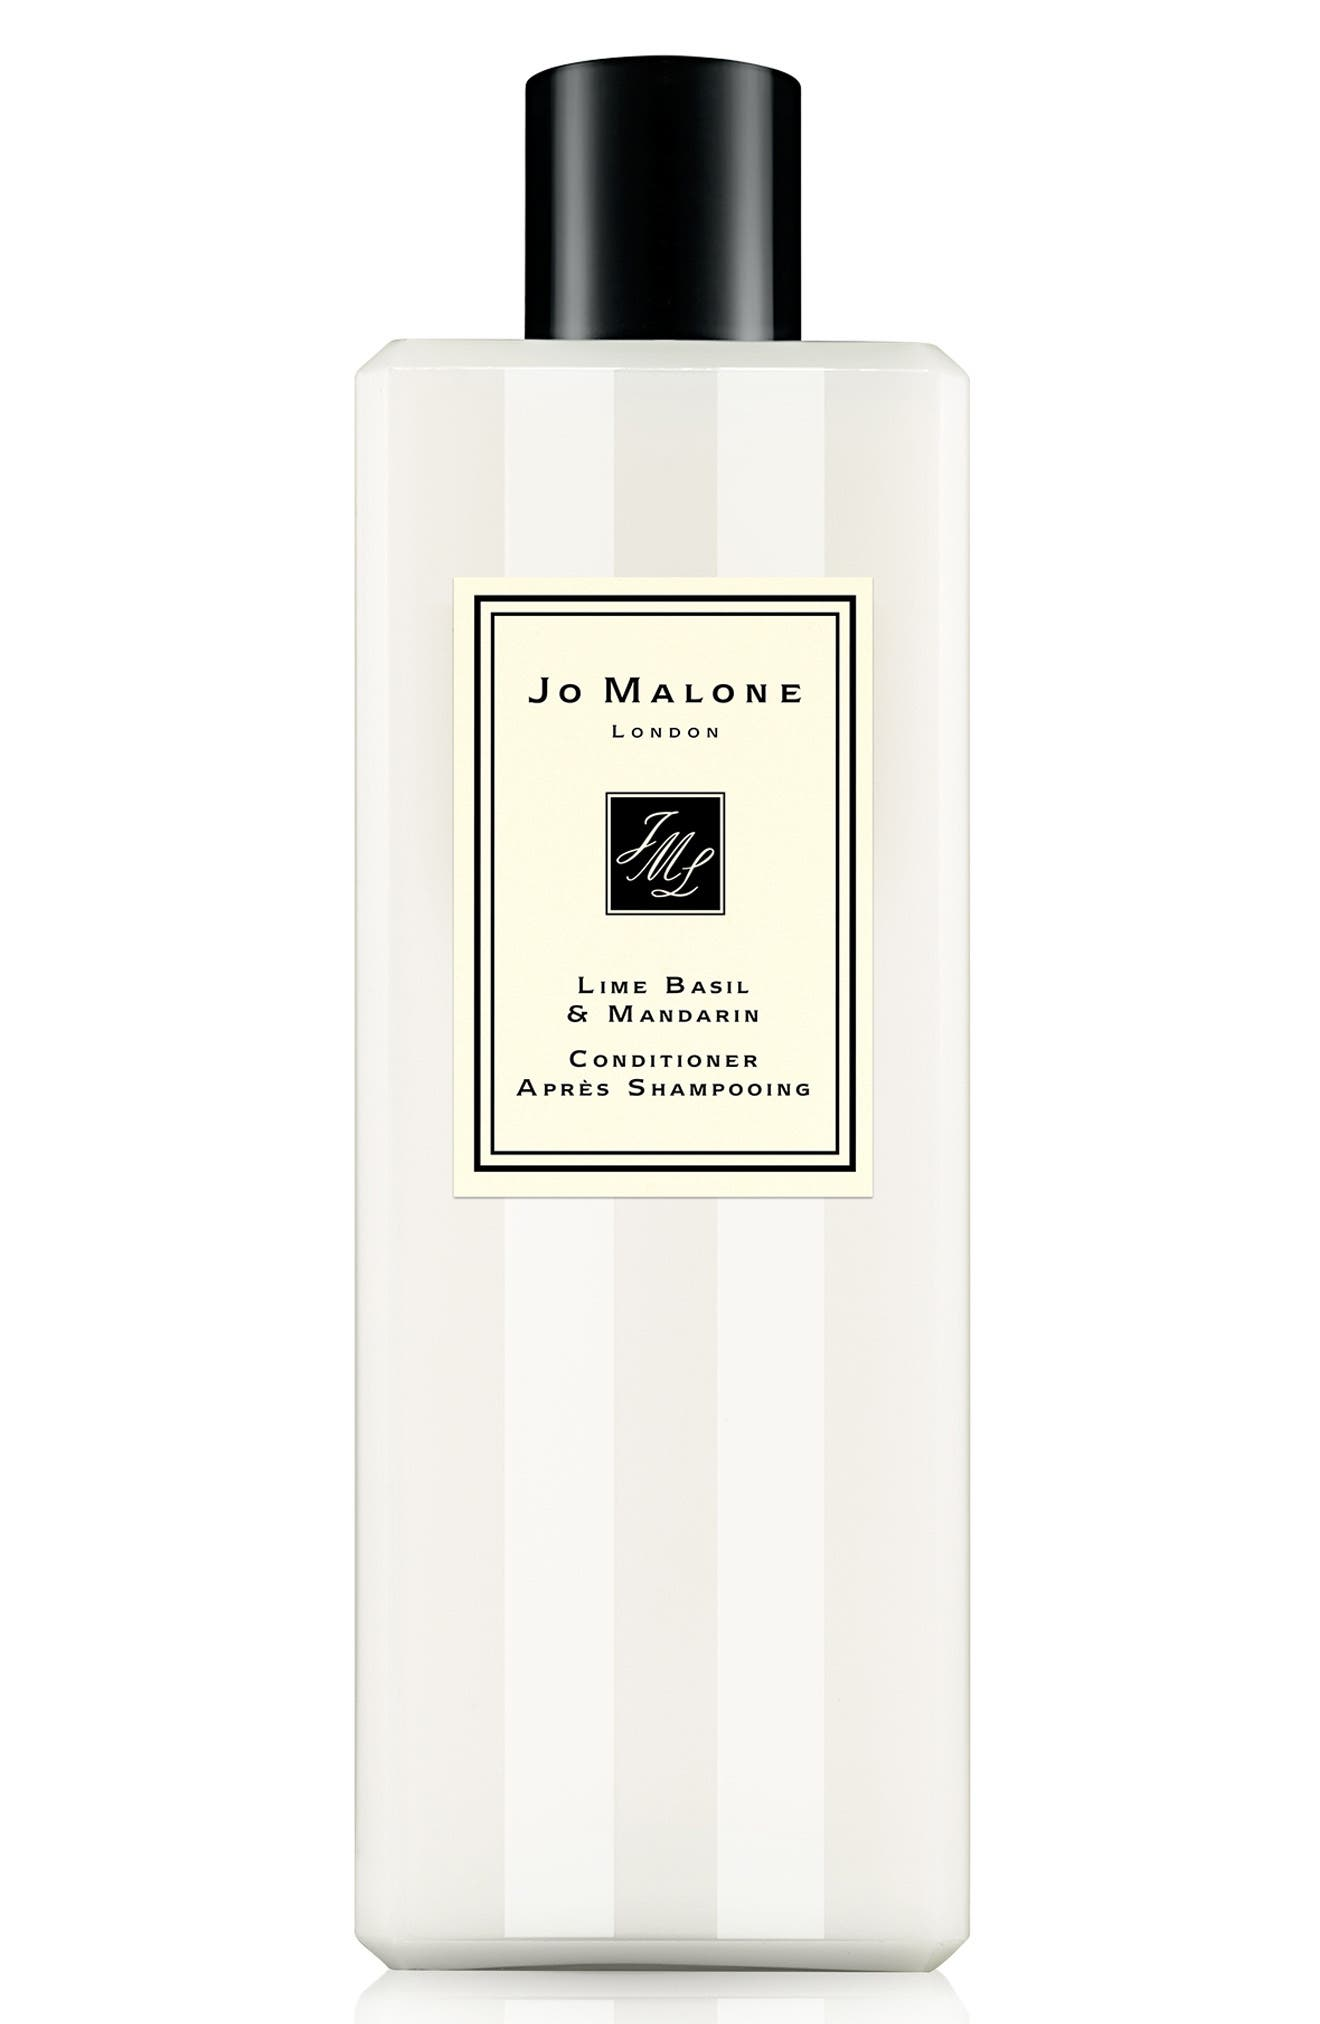 Jo Malone London™ Lime Basil & Mandarin Conditioner